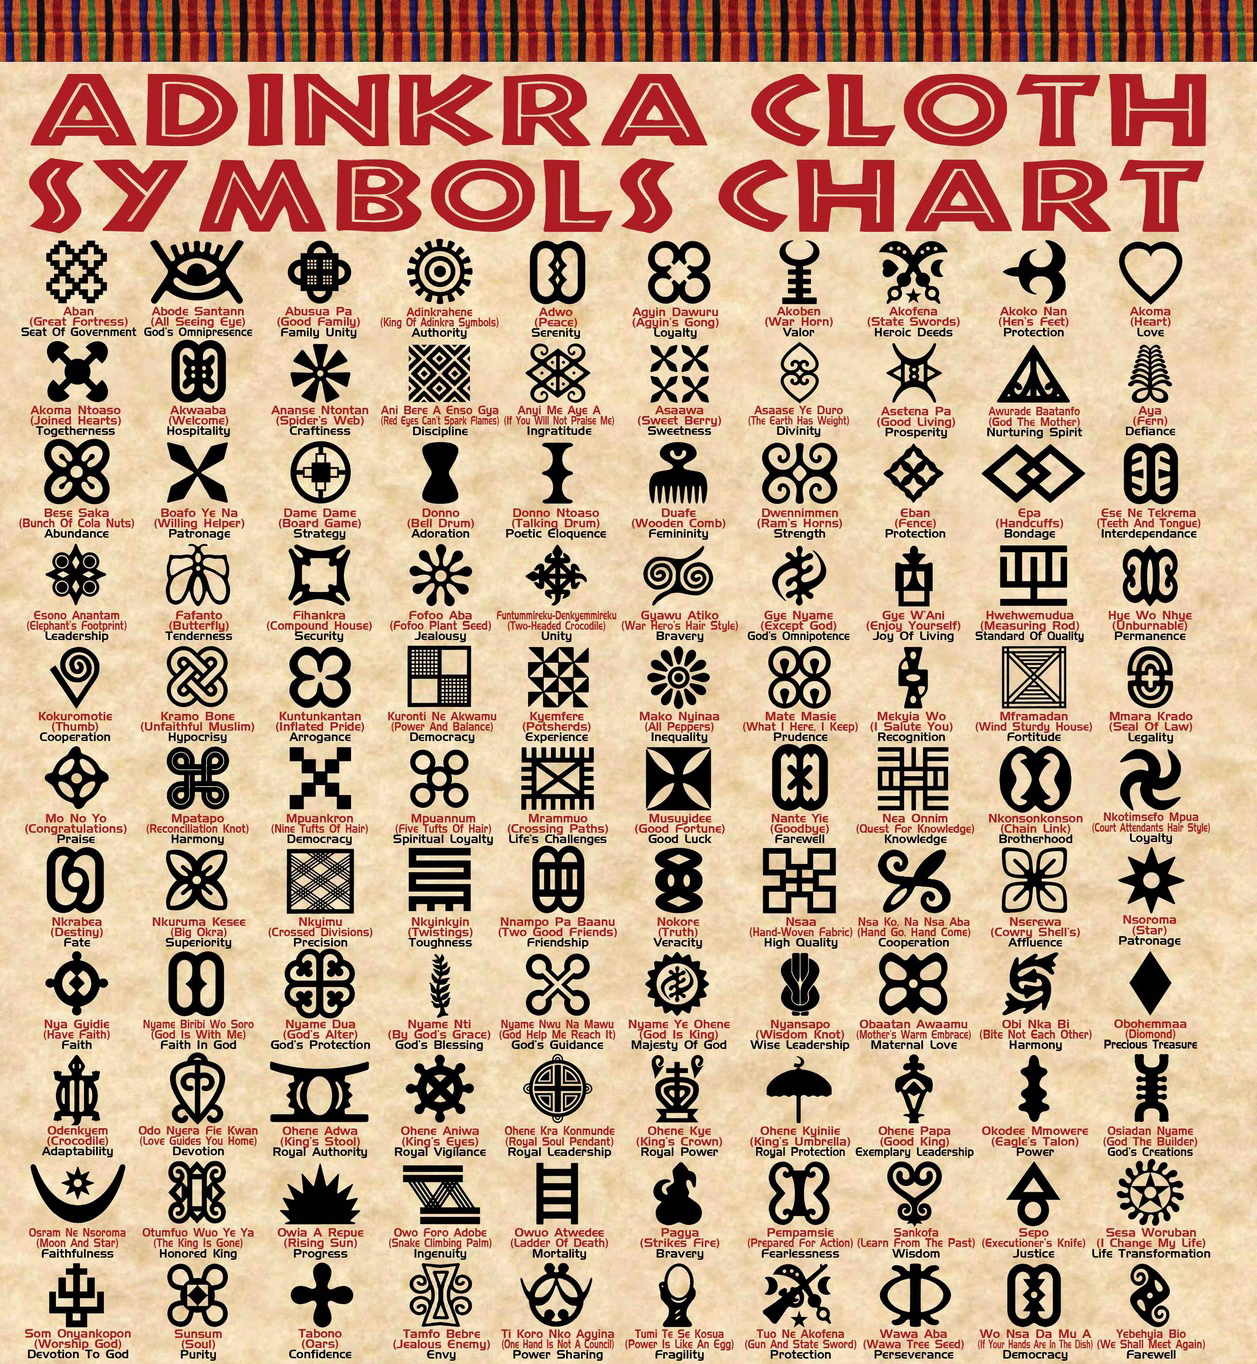 Mckinley 6th grade drama class african storytelling adinkra symbols adinkra are symbols common in west african societies especially among the akan people of ghana each symbol represents a different concept or idea biocorpaavc Image collections